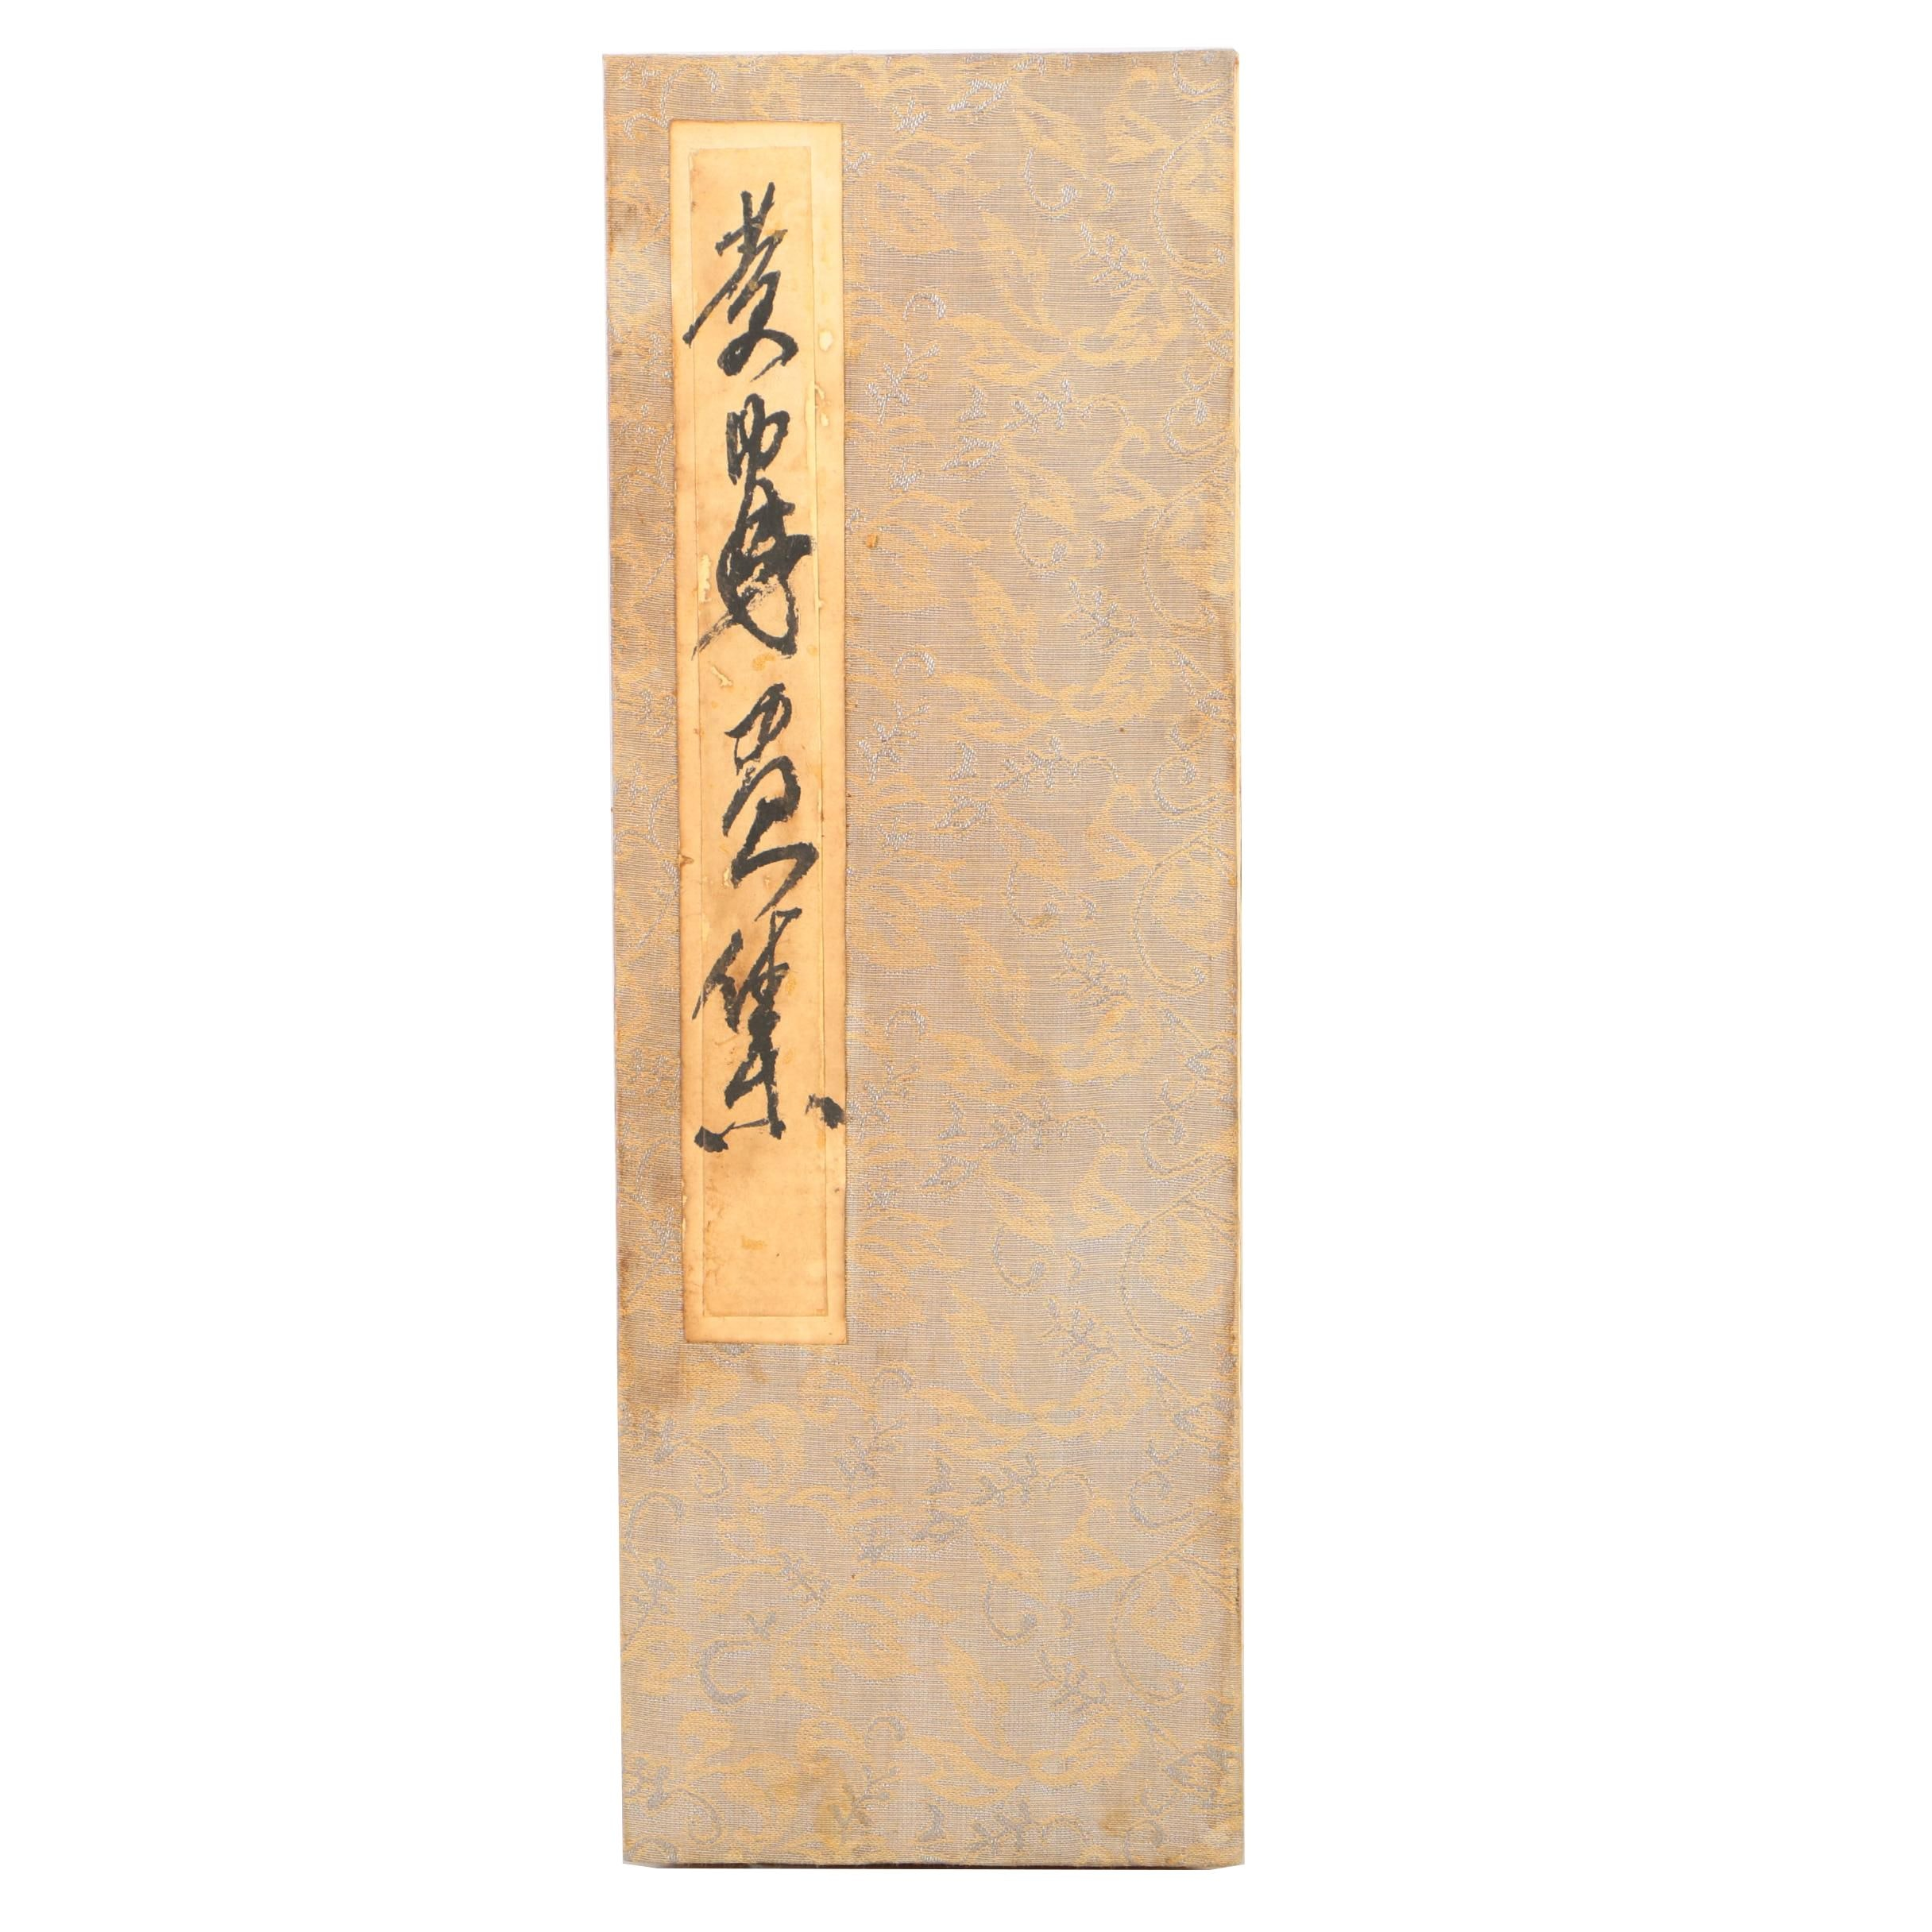 East Asian Pleated Scroll Book